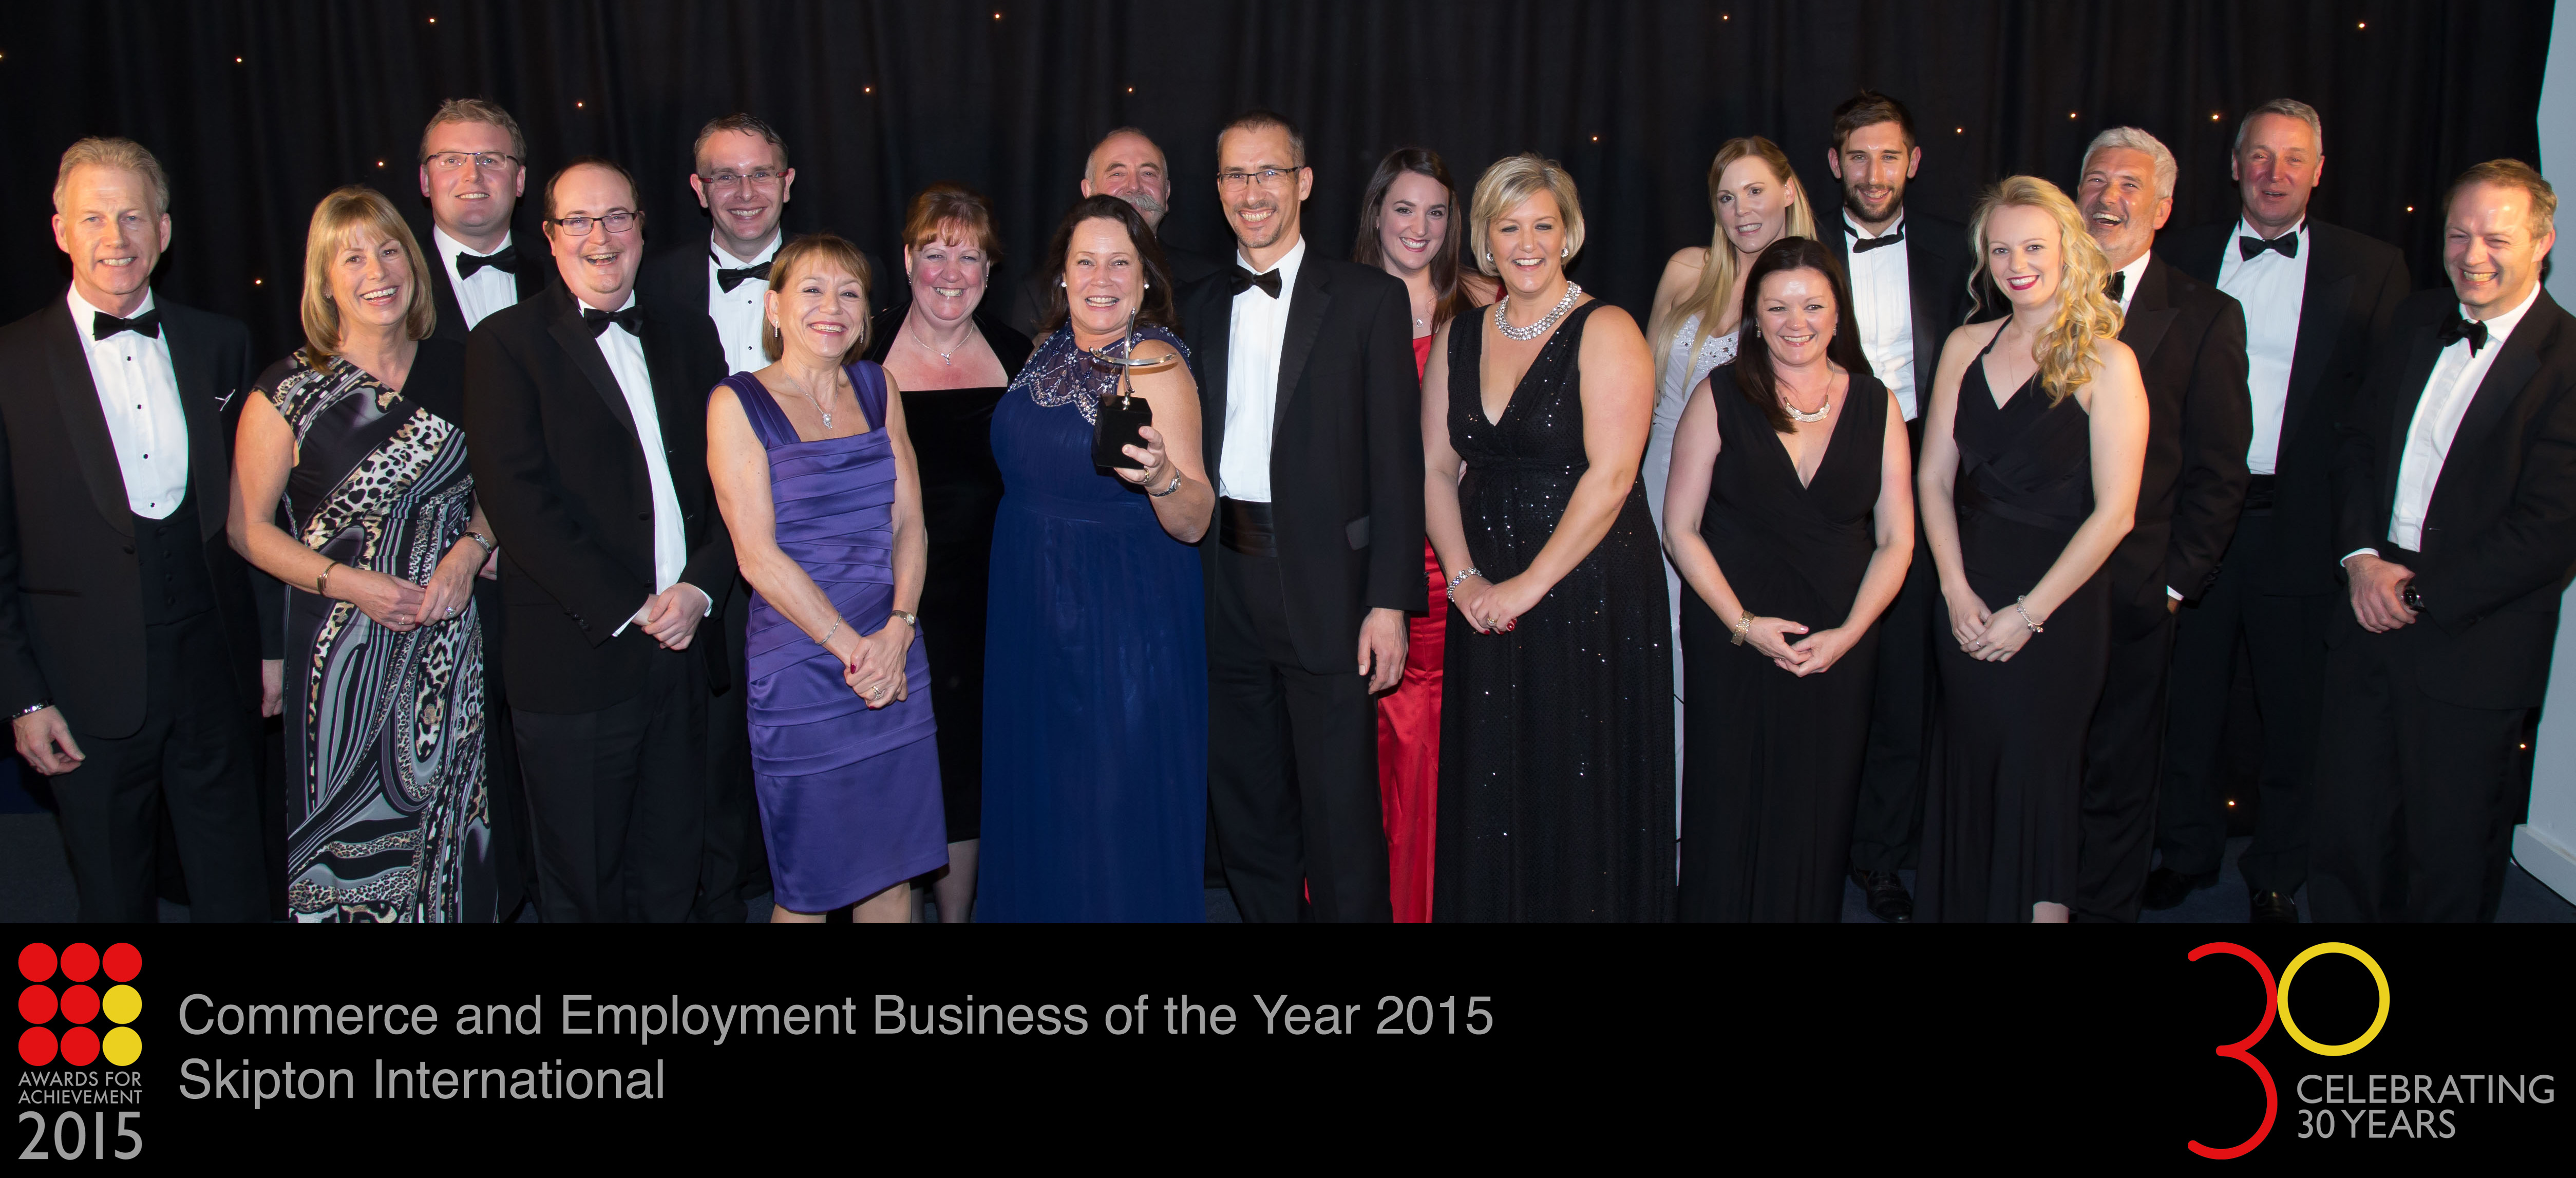 C E Business of the Year - Skipton International - Skipton International